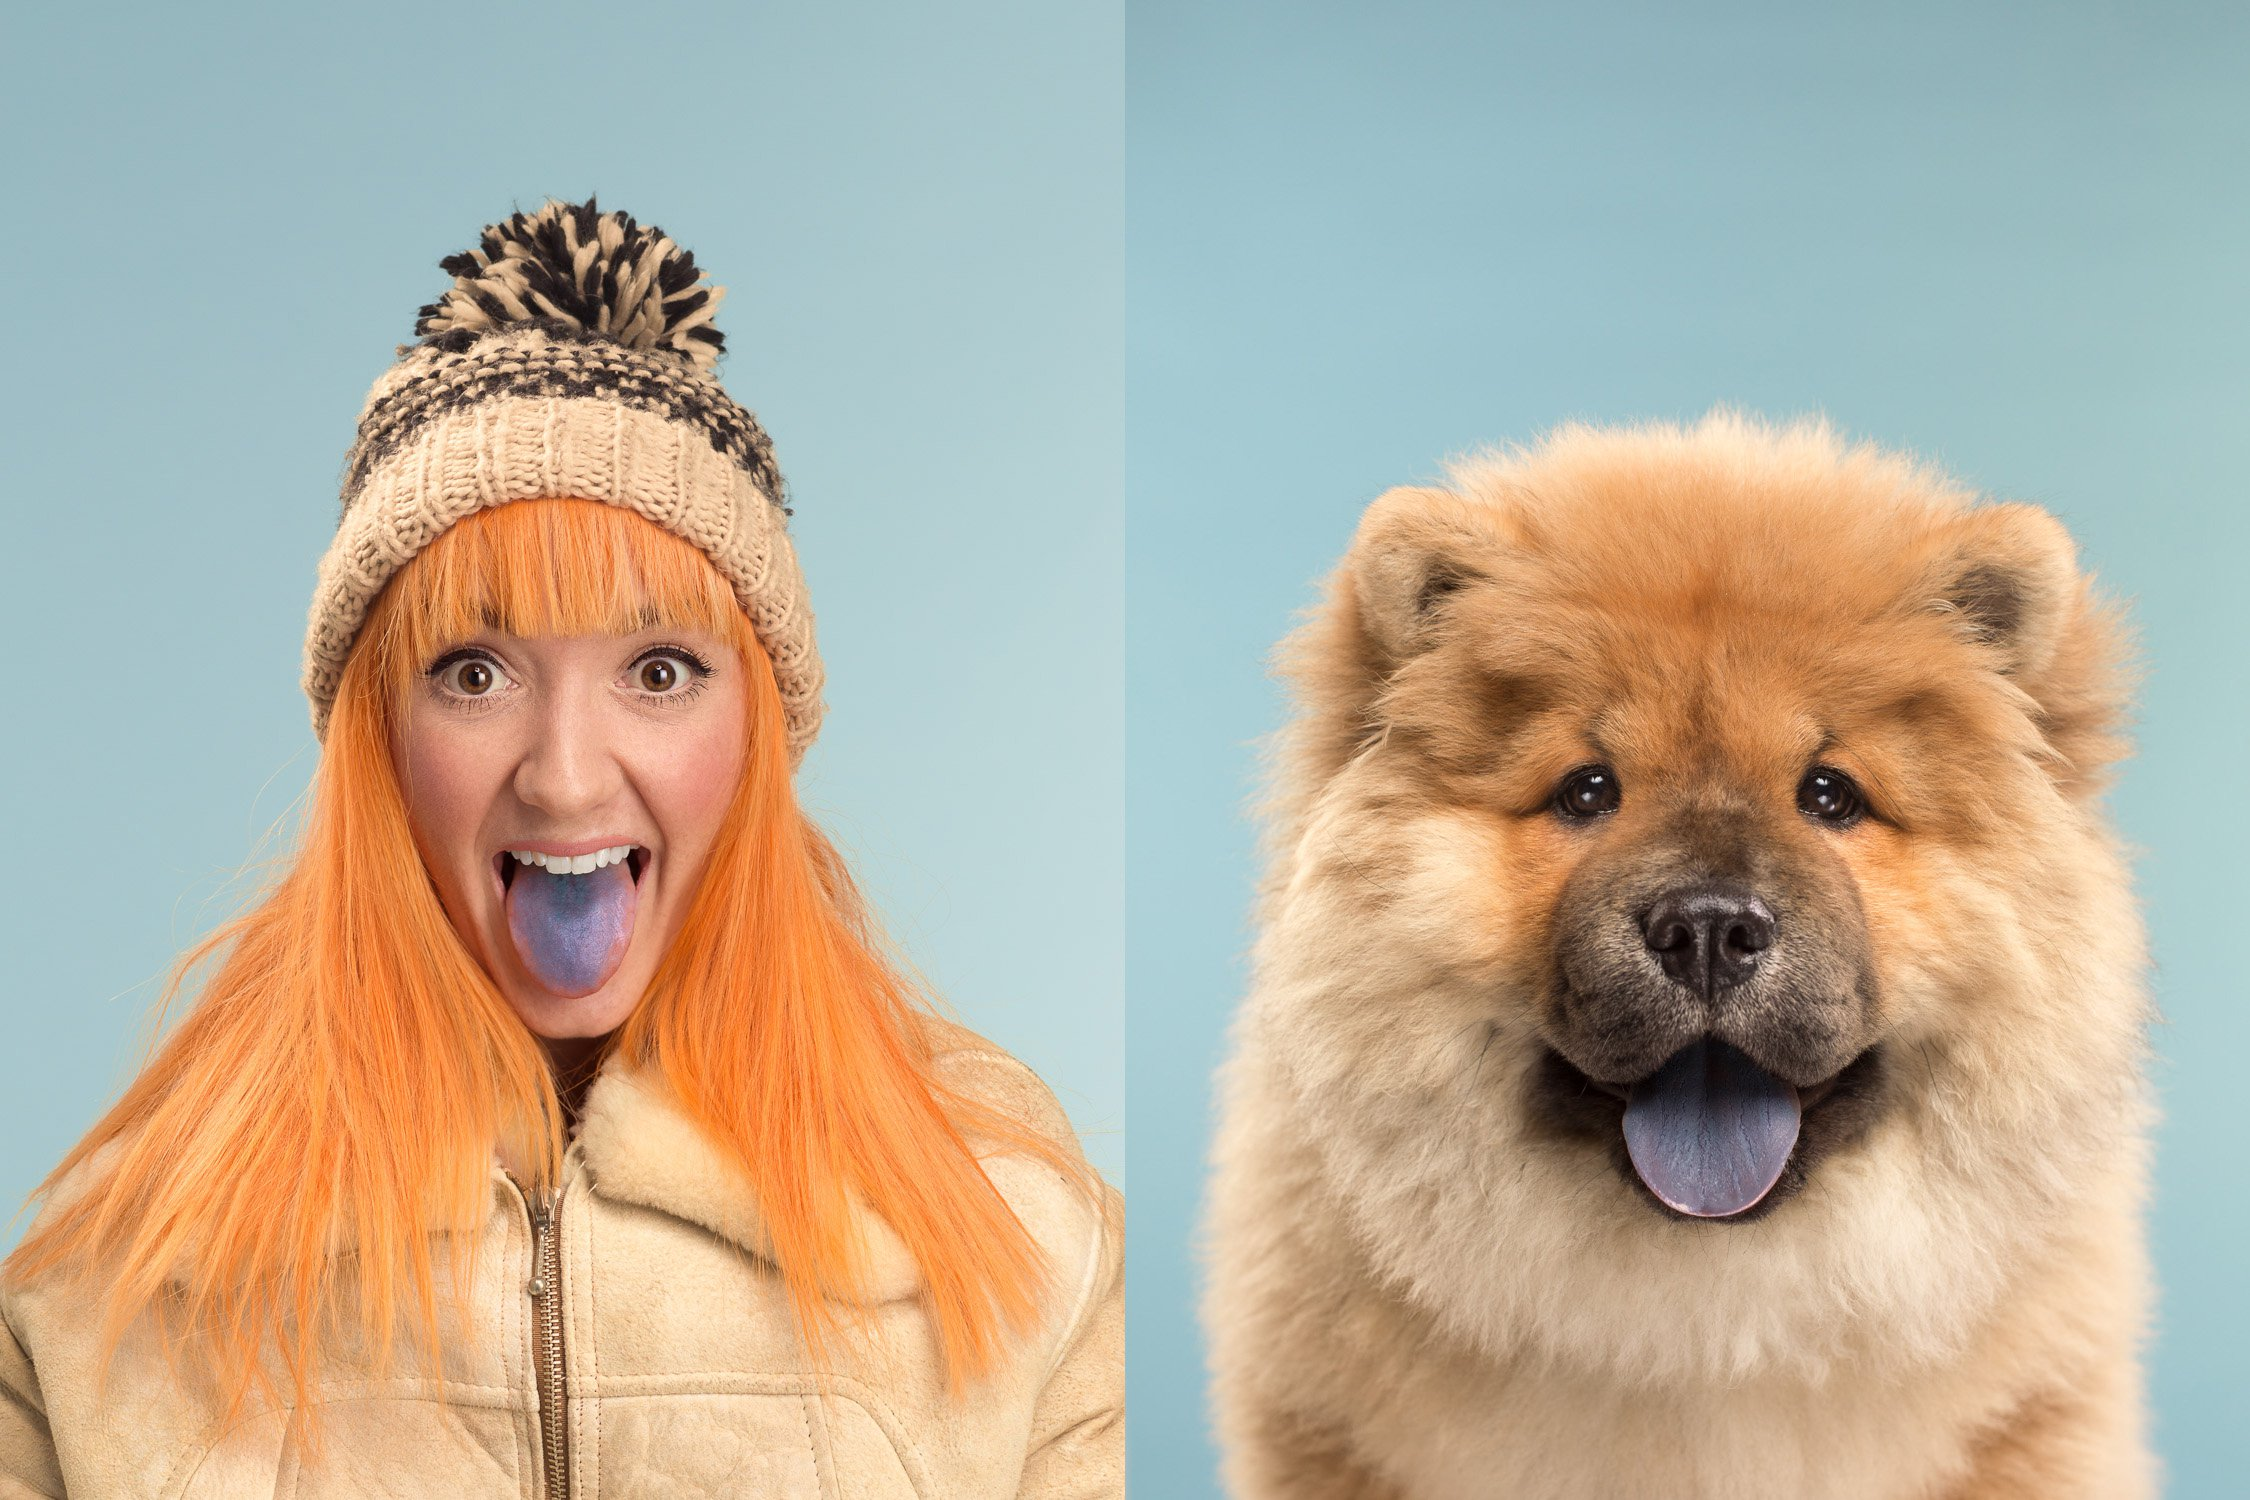 Do you need further evidence that dogs look like their owners?